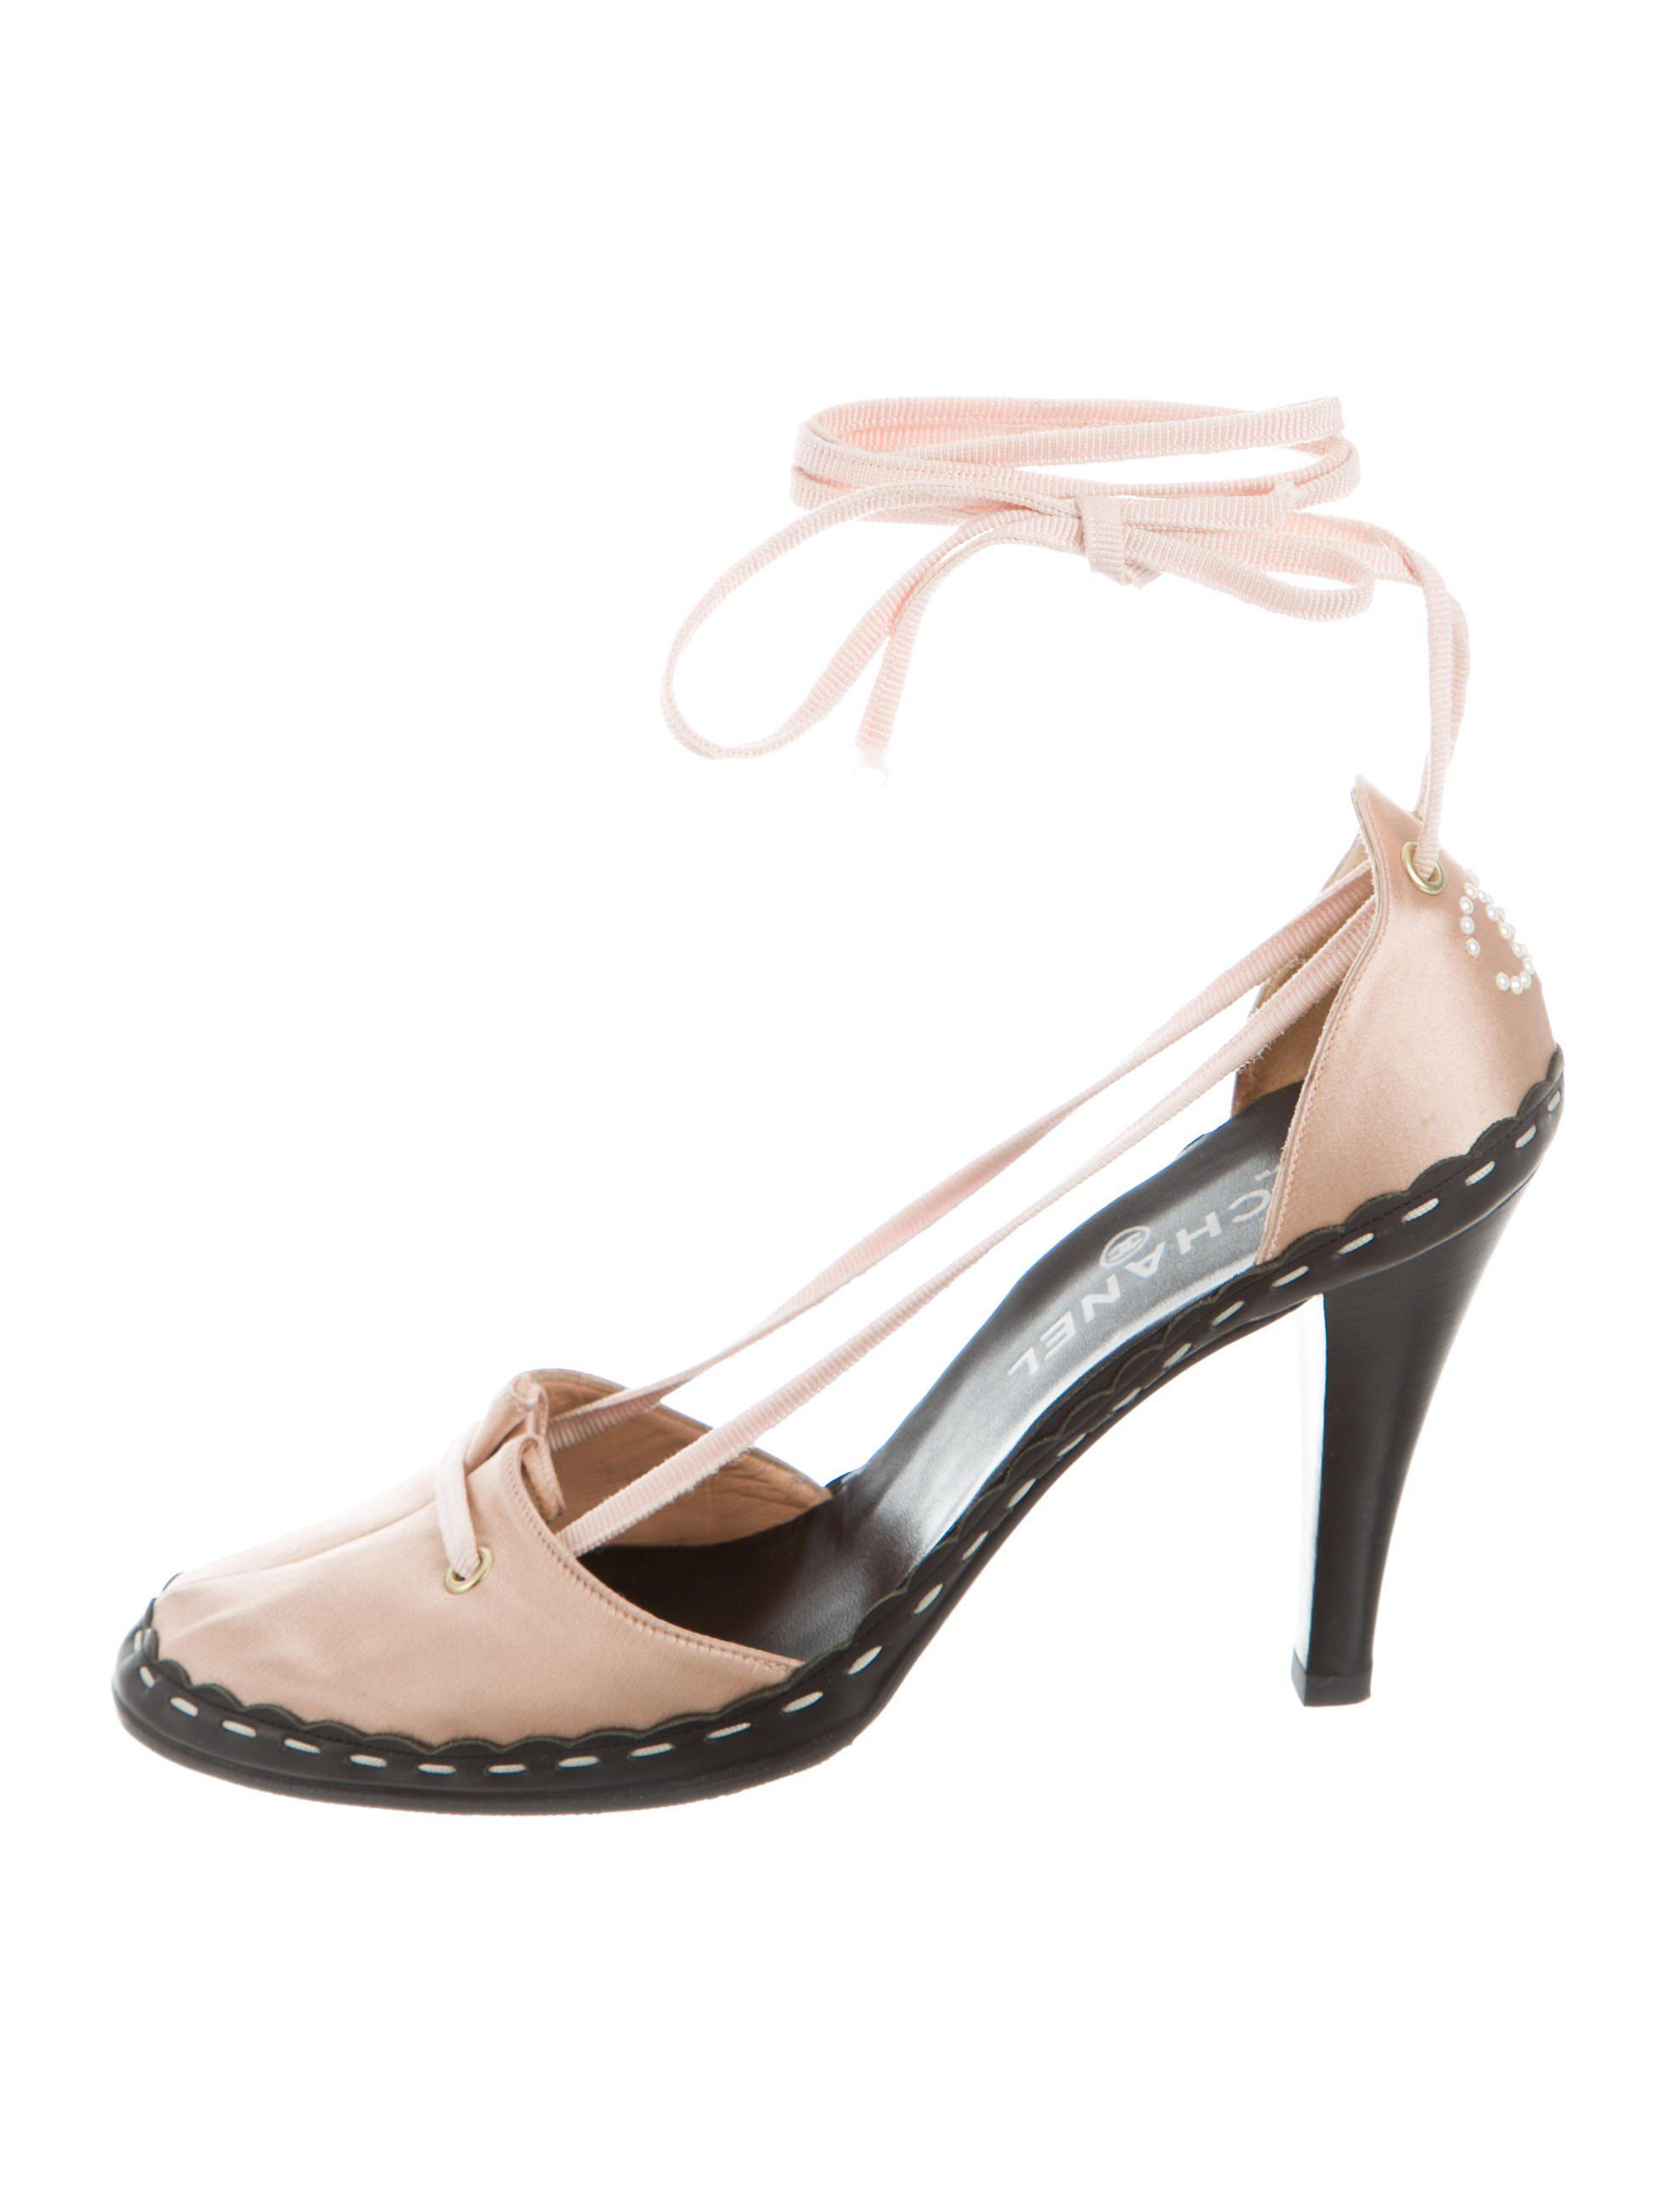 b899b3d9cabd Lyst - Chanel Satin Lace-up Pumps Gold in Metallic